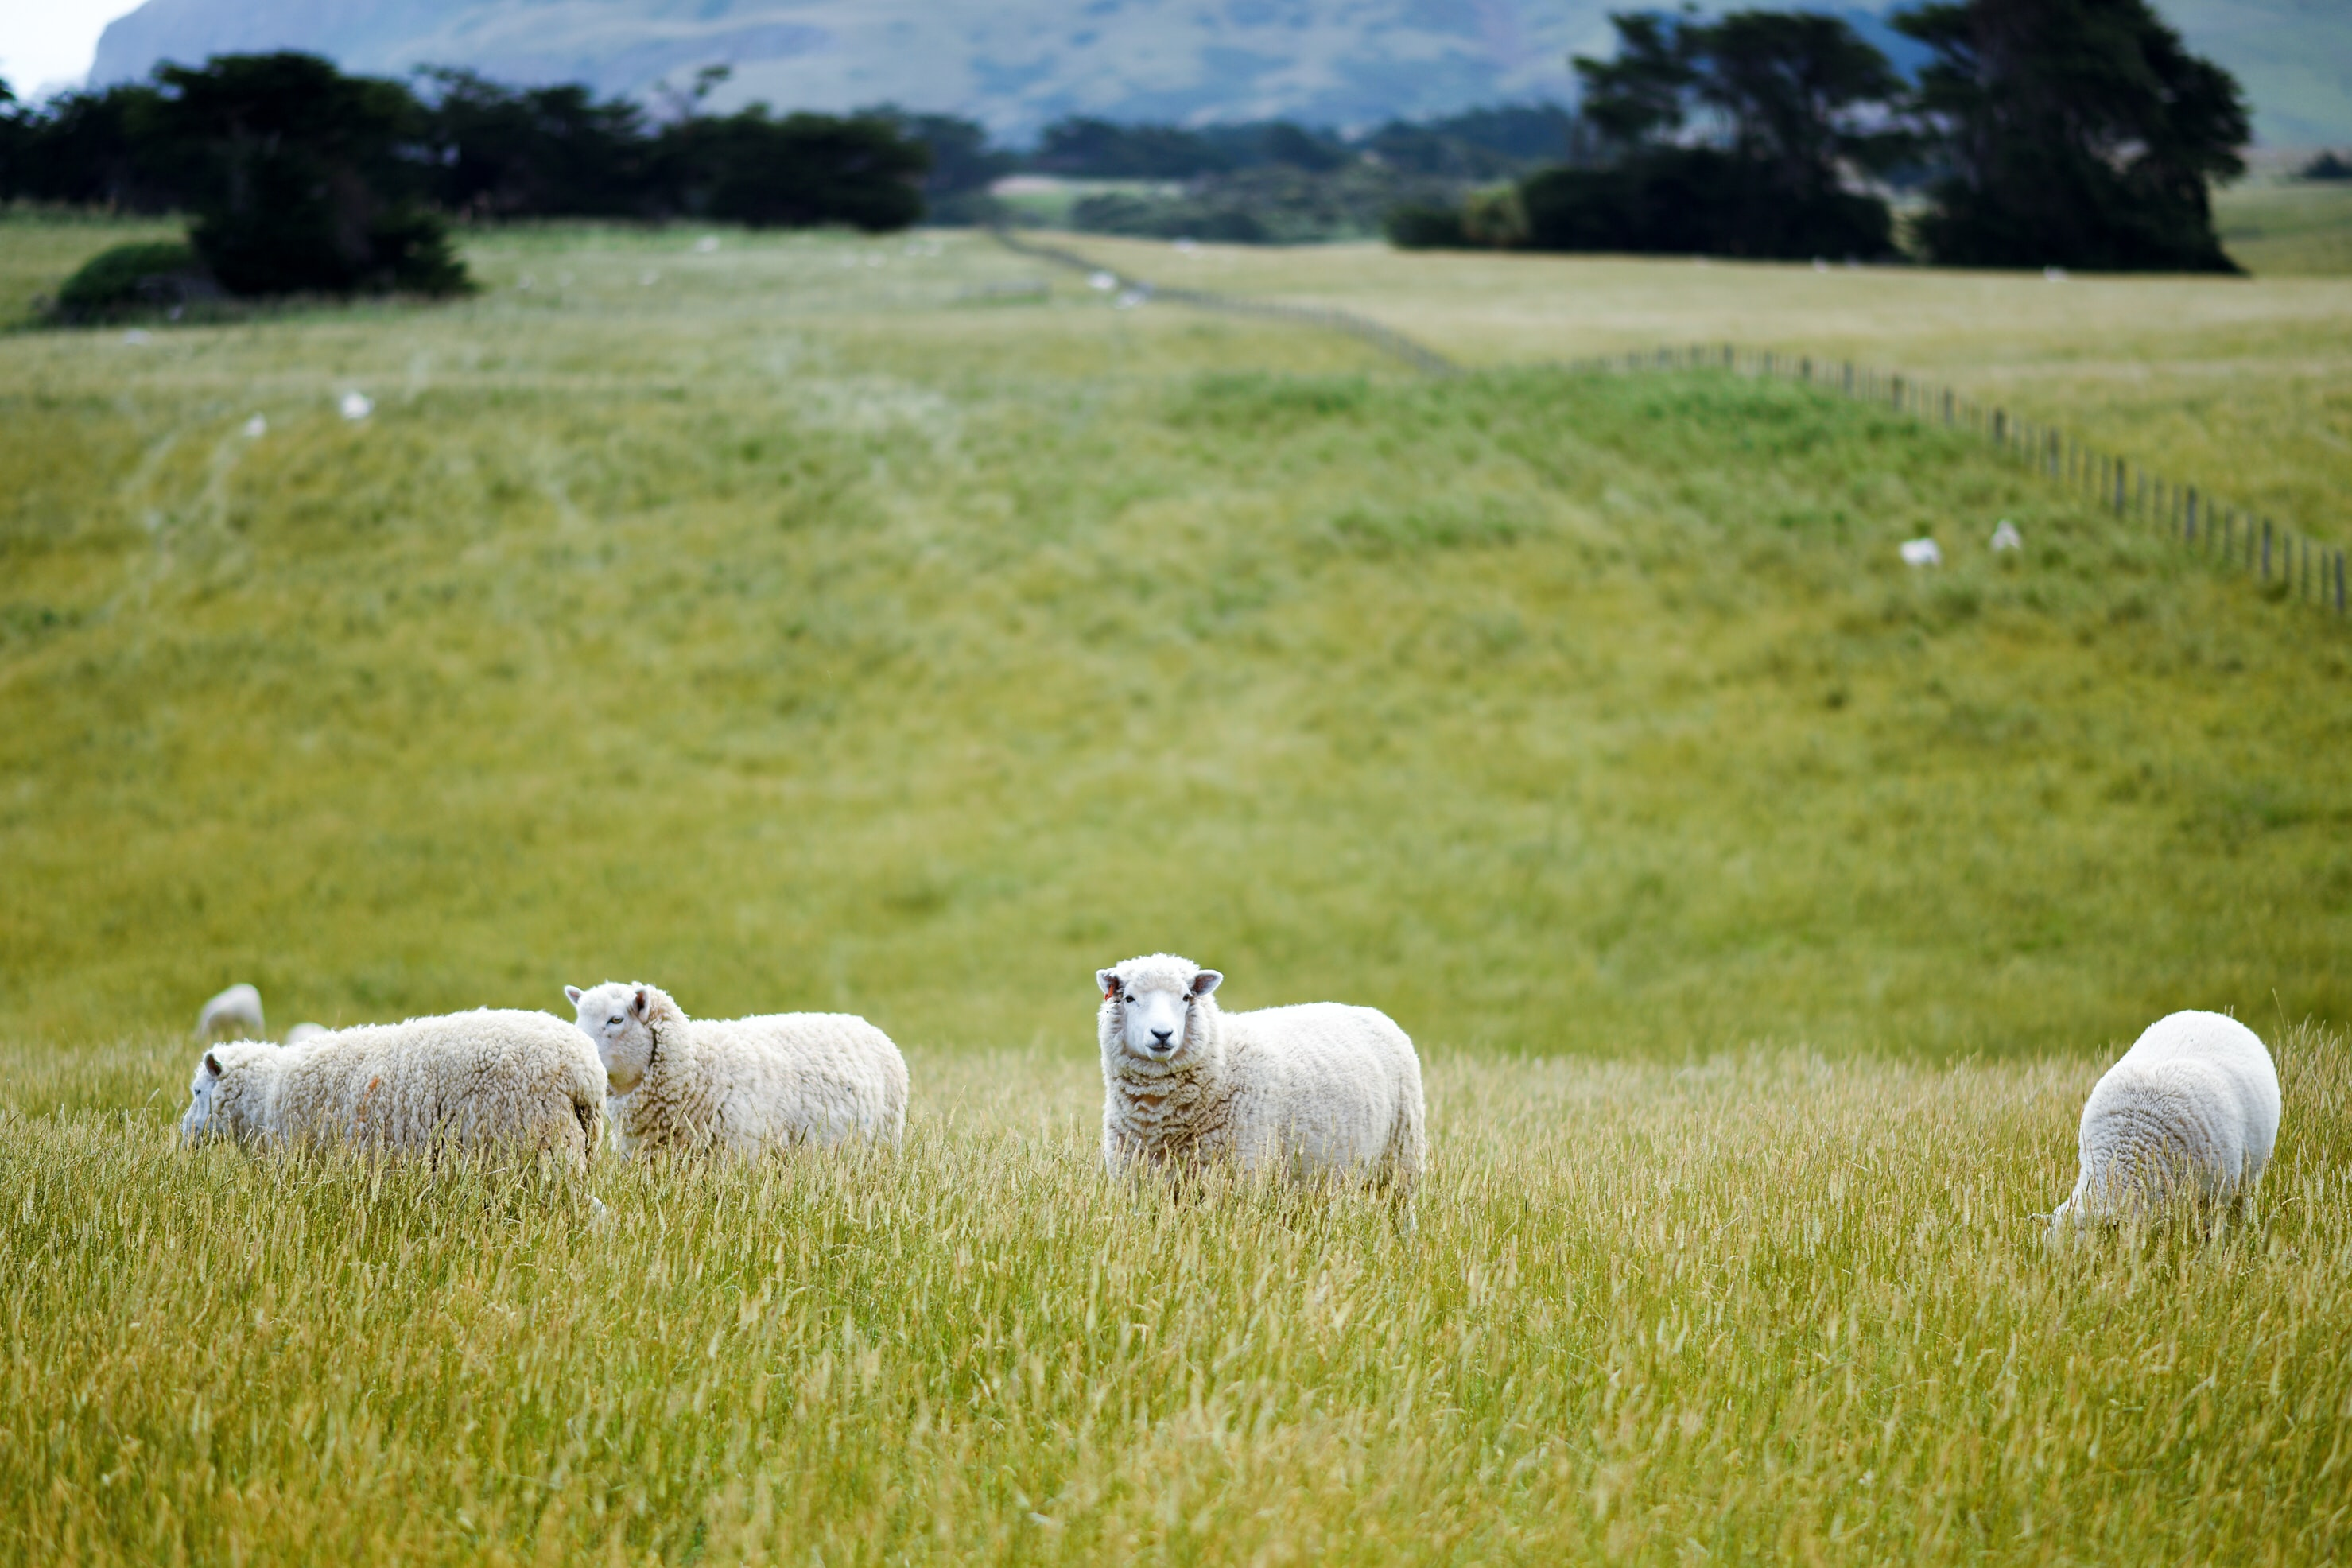 Sheep graze in a grassy hillside in New Zealand